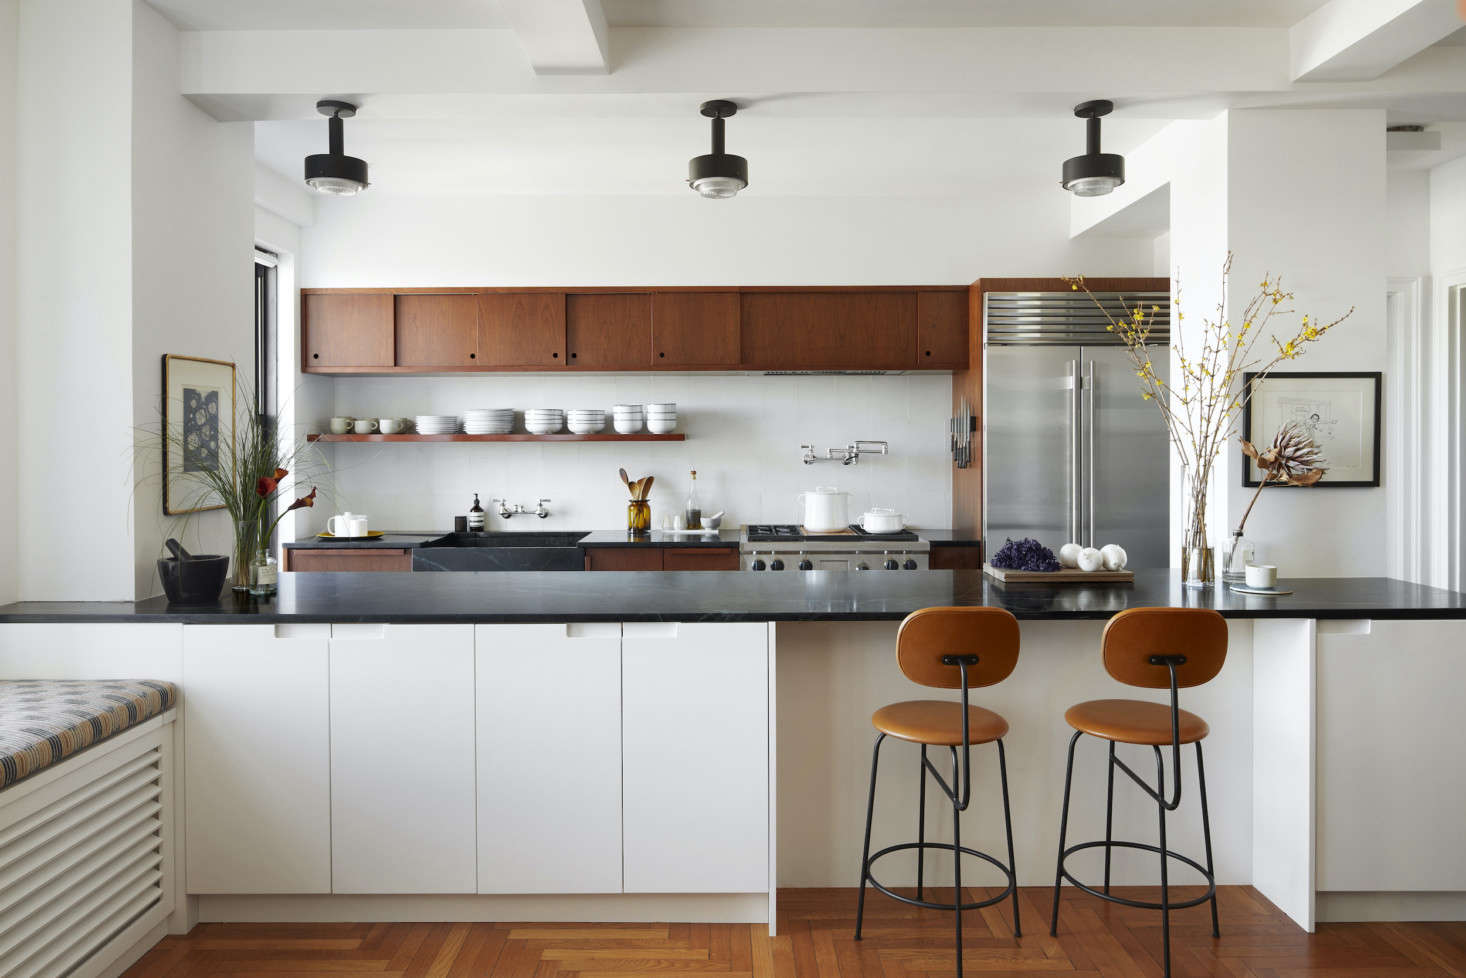 Tiny no more, the kitchen, inspired by California mid-century design, is now centralized and open to the dining room. The lighting fixtures here are 60s Scandinavian pendants by Arnold Wiigs Fabrikker from src=